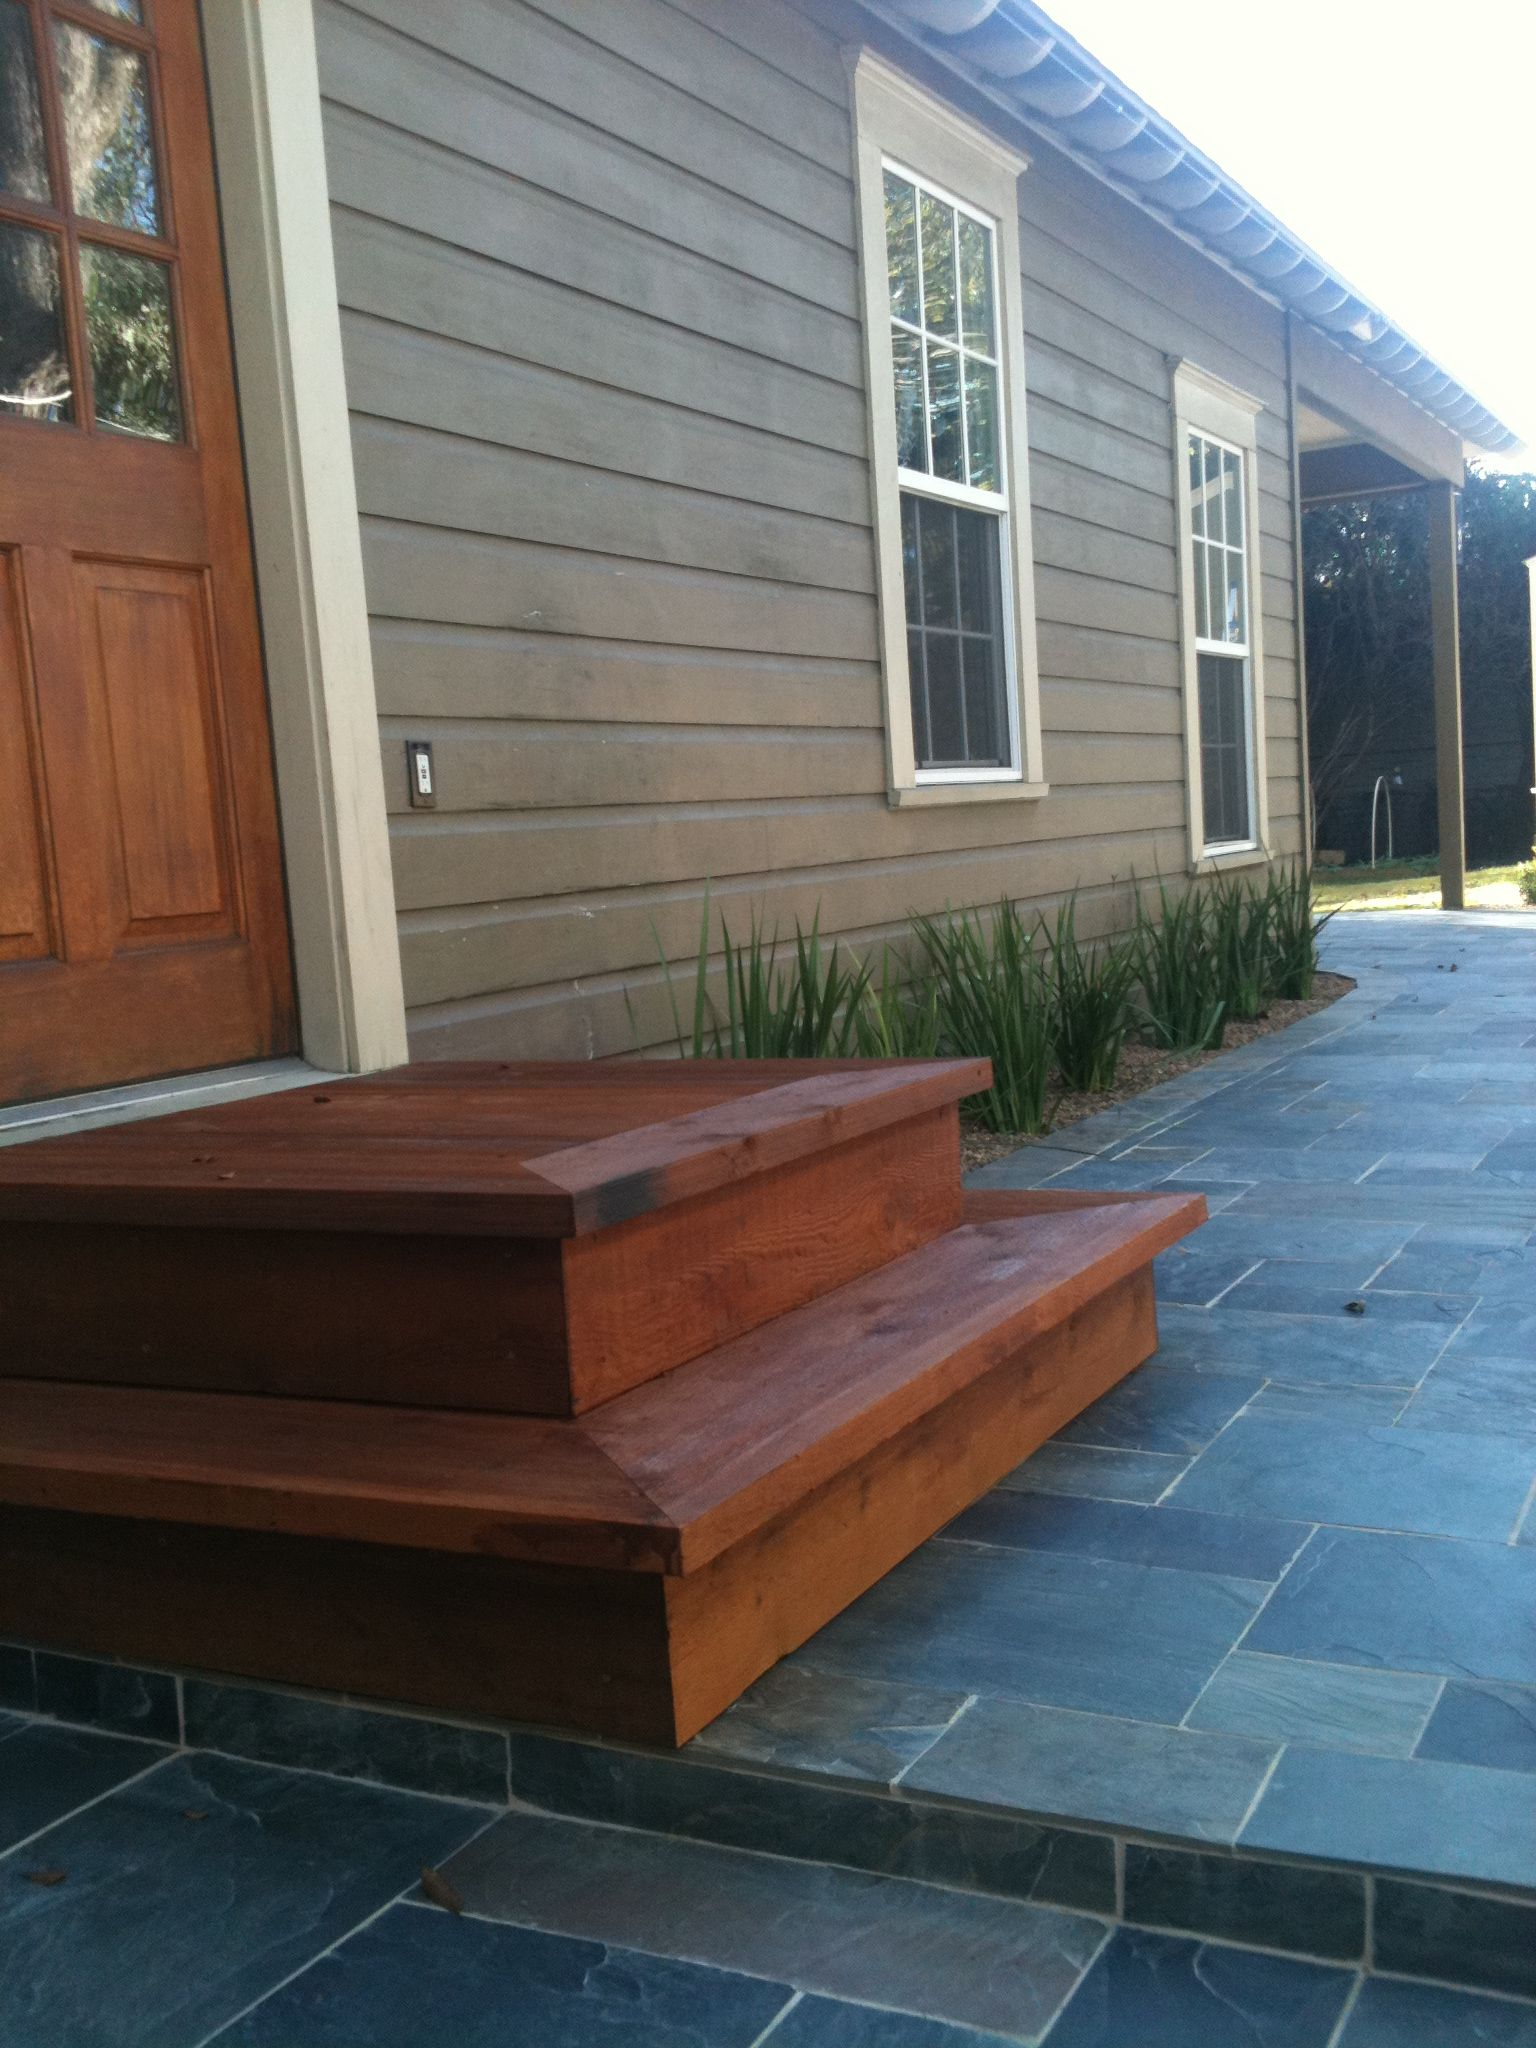 Western Red Cedar Steps leading to the house create a simple but